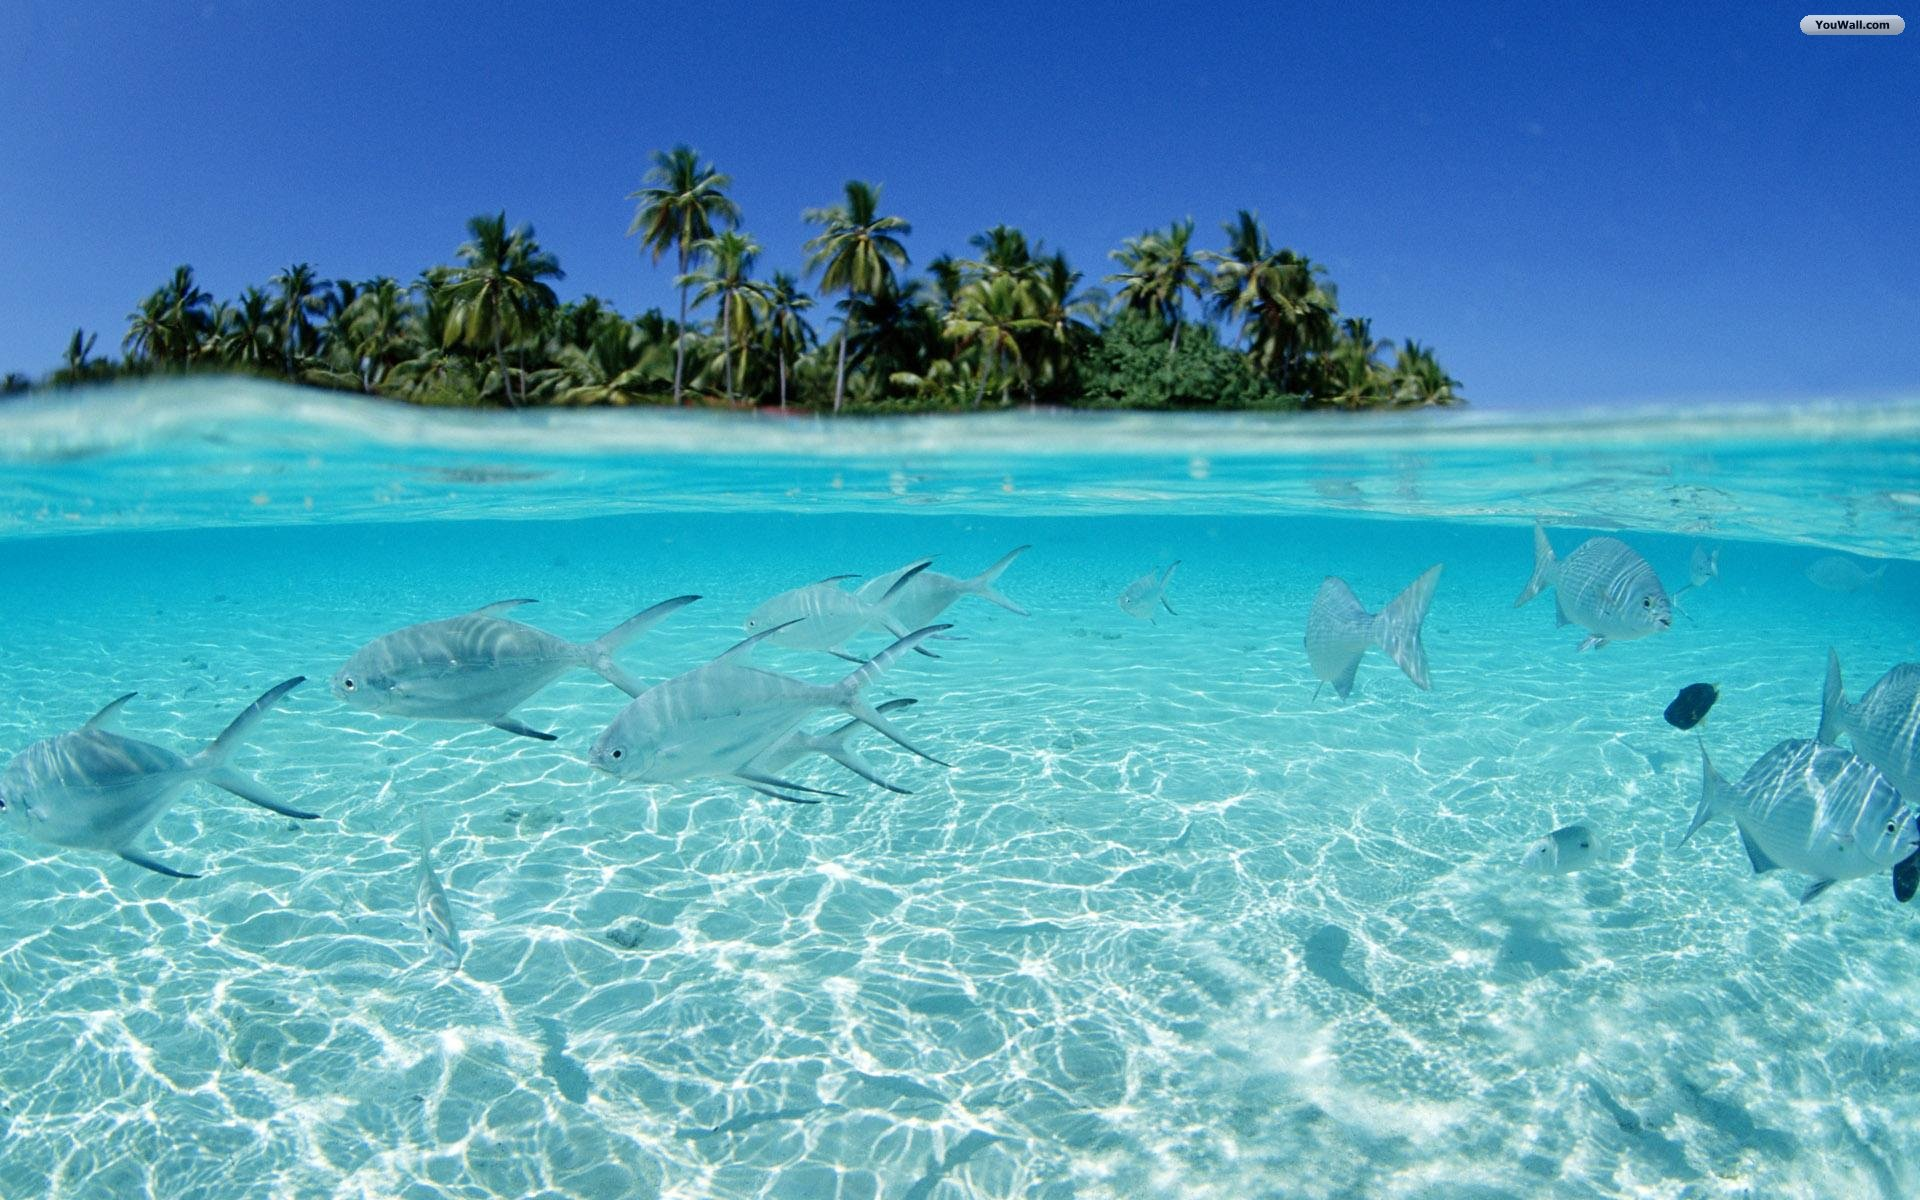 tropical island Fish HD Wallpaper Crystal Clear Water Tropical Island 1920x1200